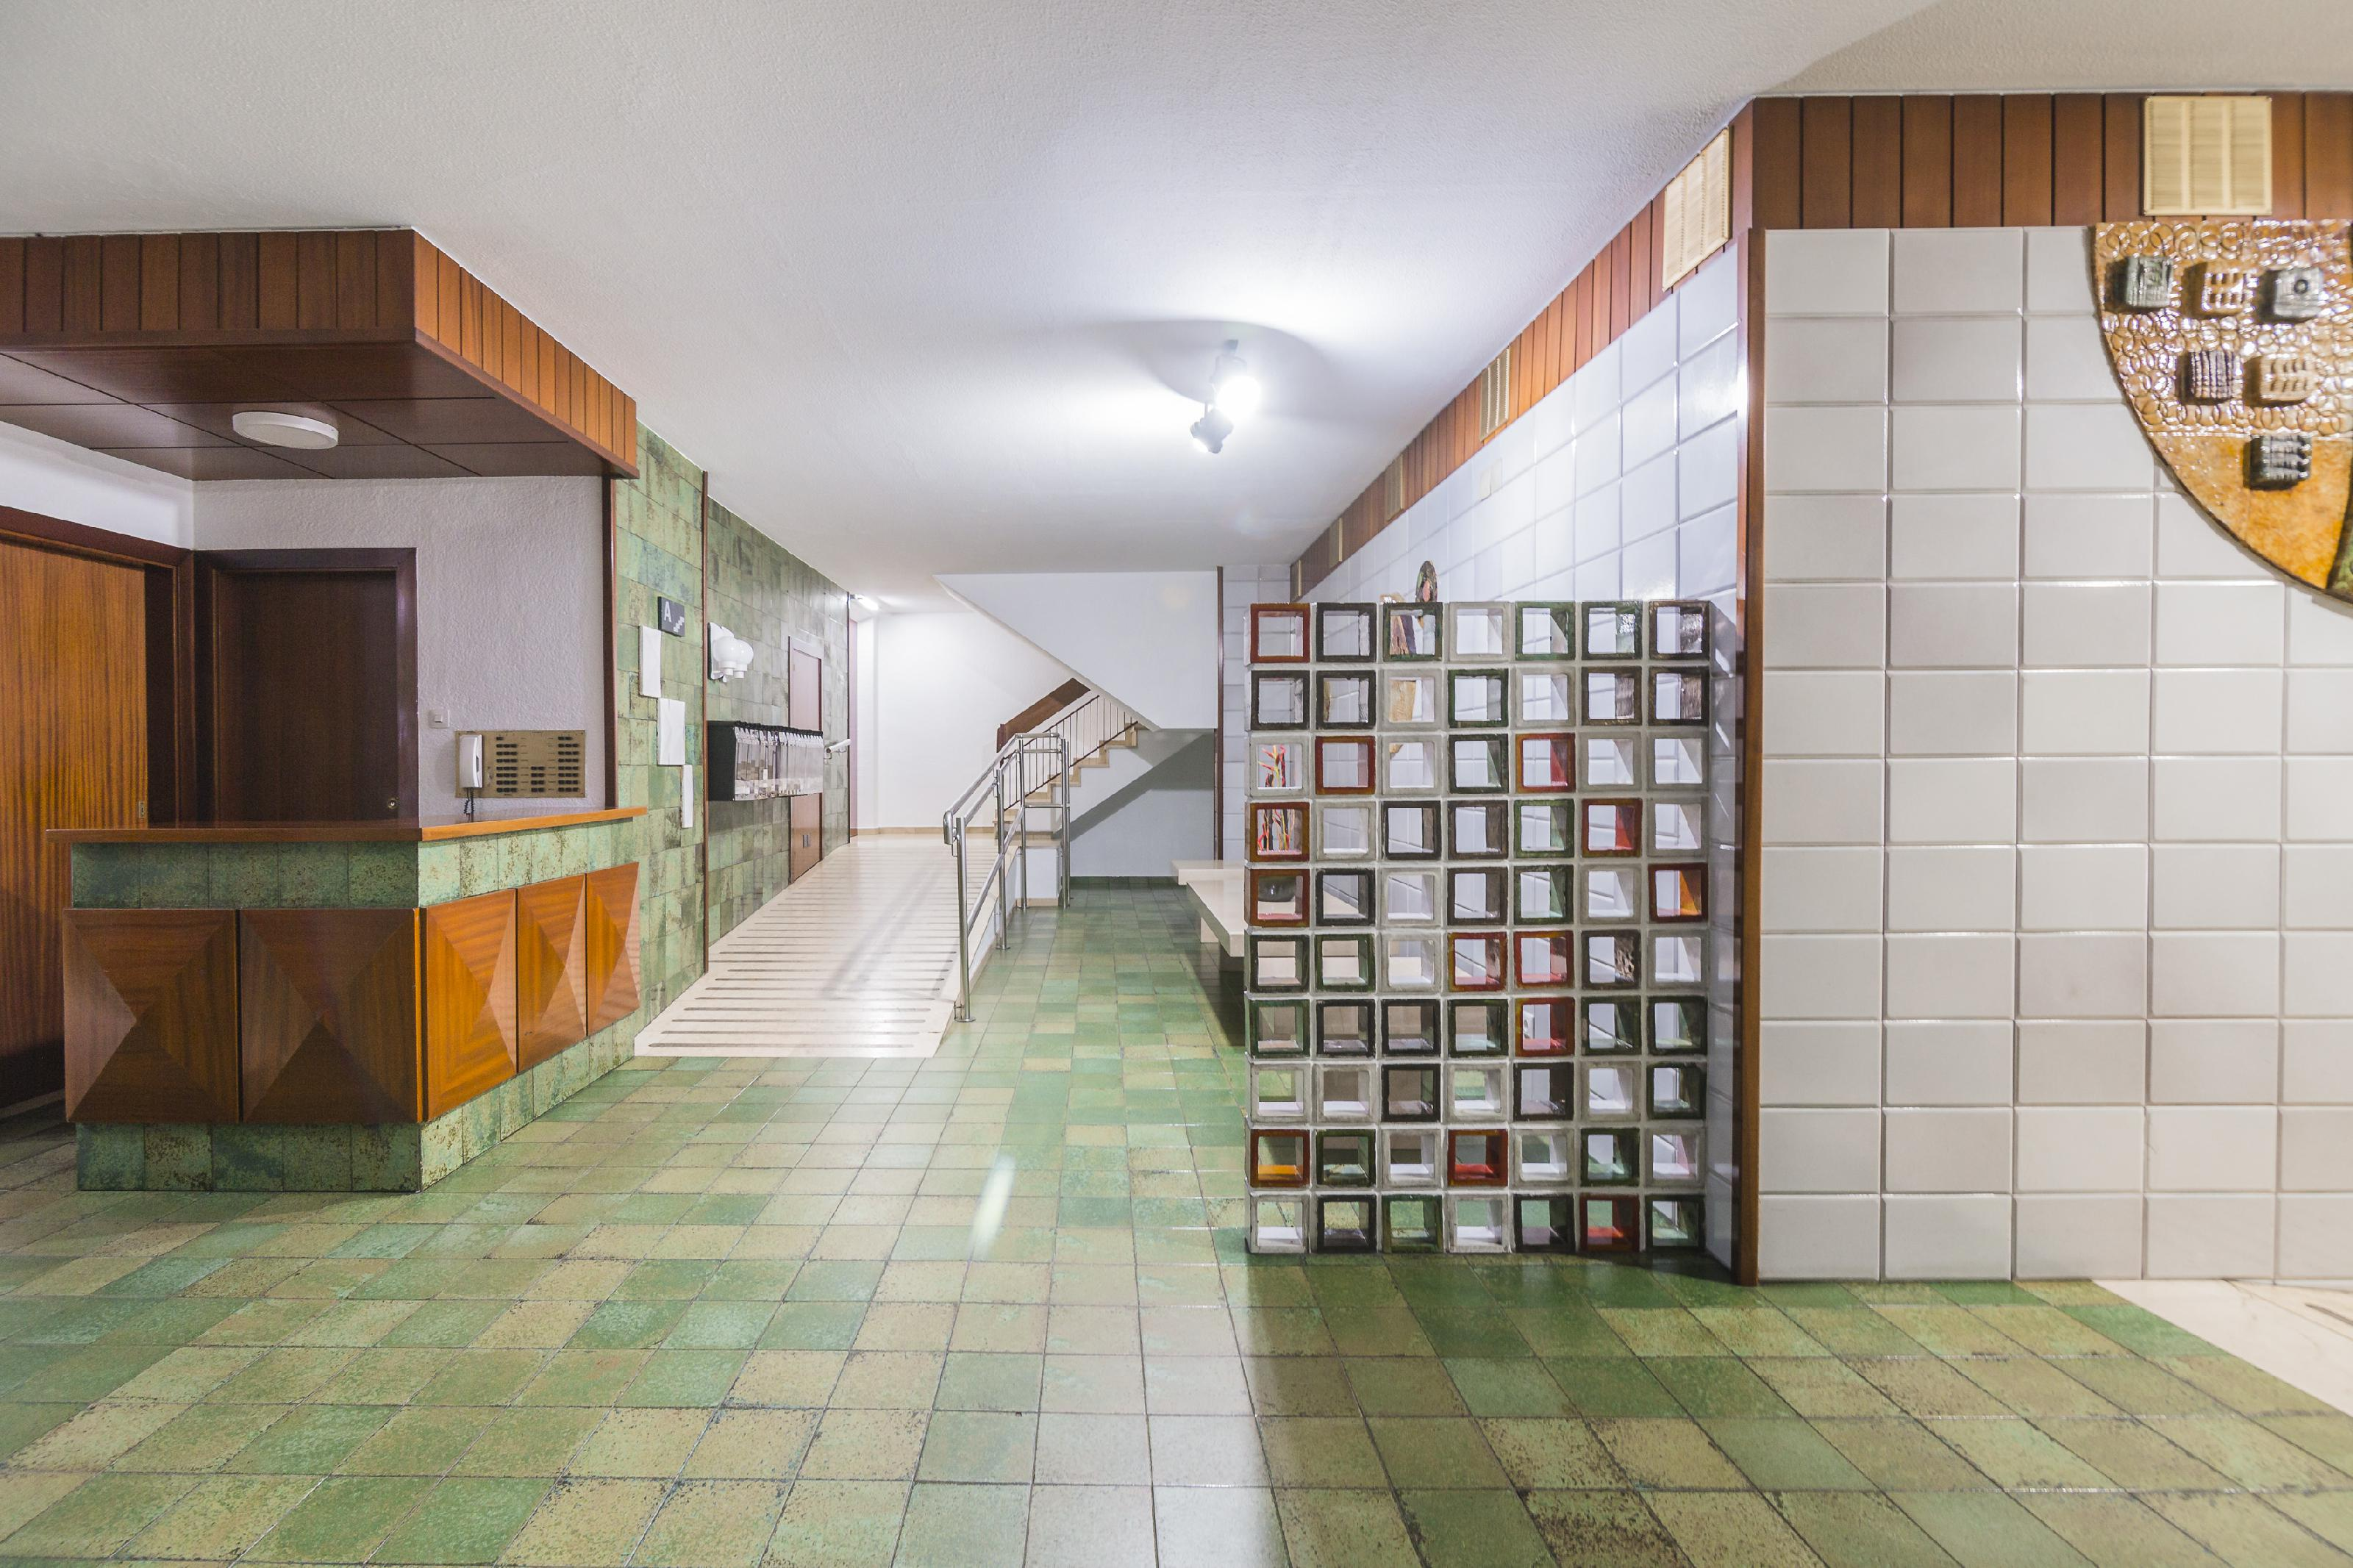 239426 Flat for sale in Les Corts, Les Corts 25